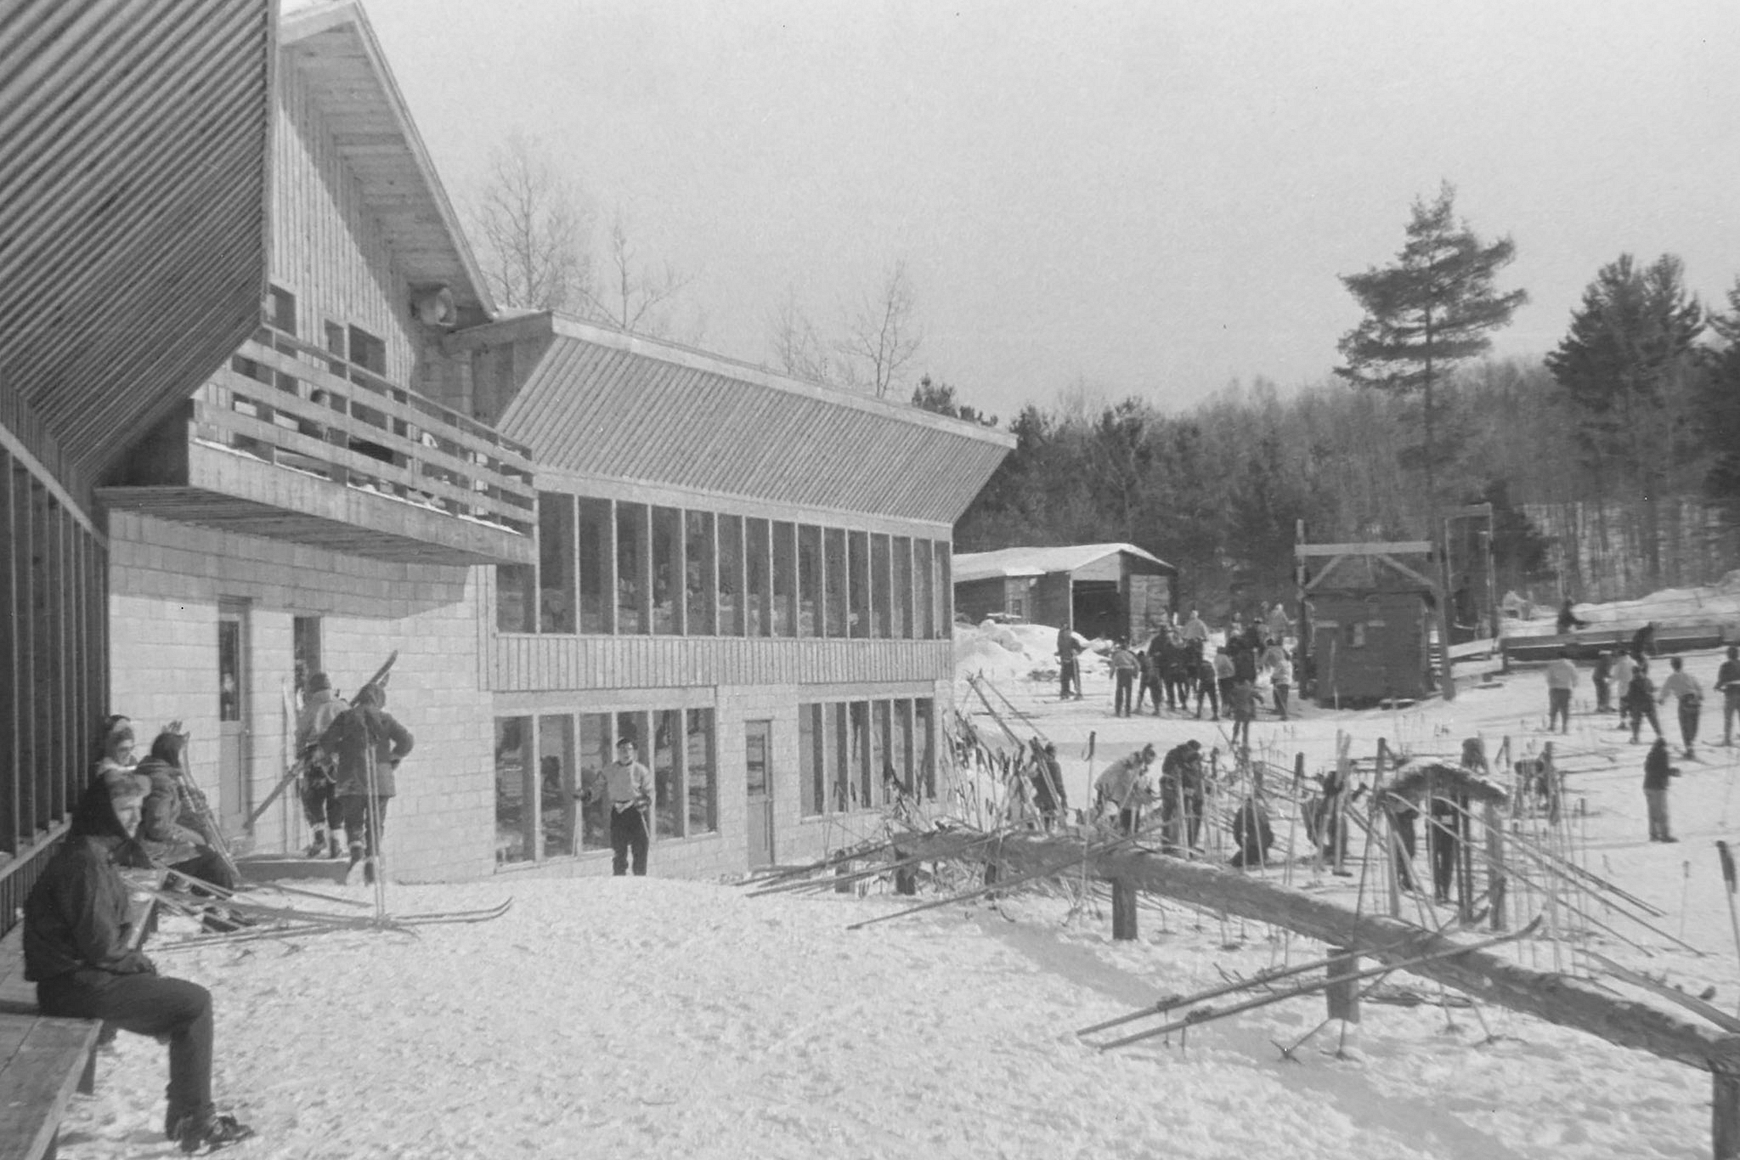 Historic photo of cross-country skiers gathered around Telemark Lodge in Cable, Wisconsin